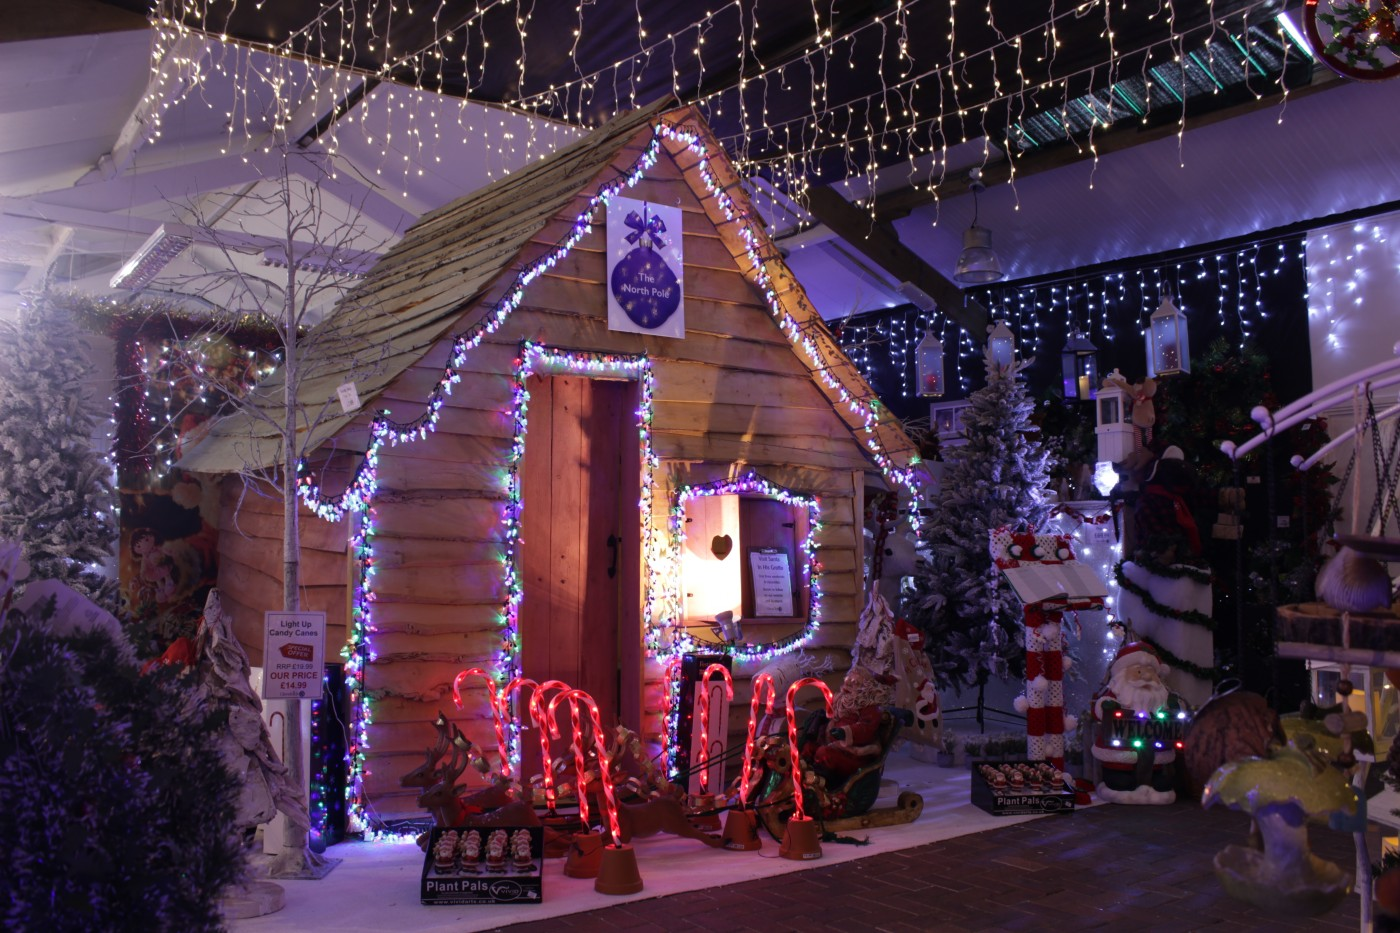 Santa Claus woodland cabin lit with fairy lights at Glendoick